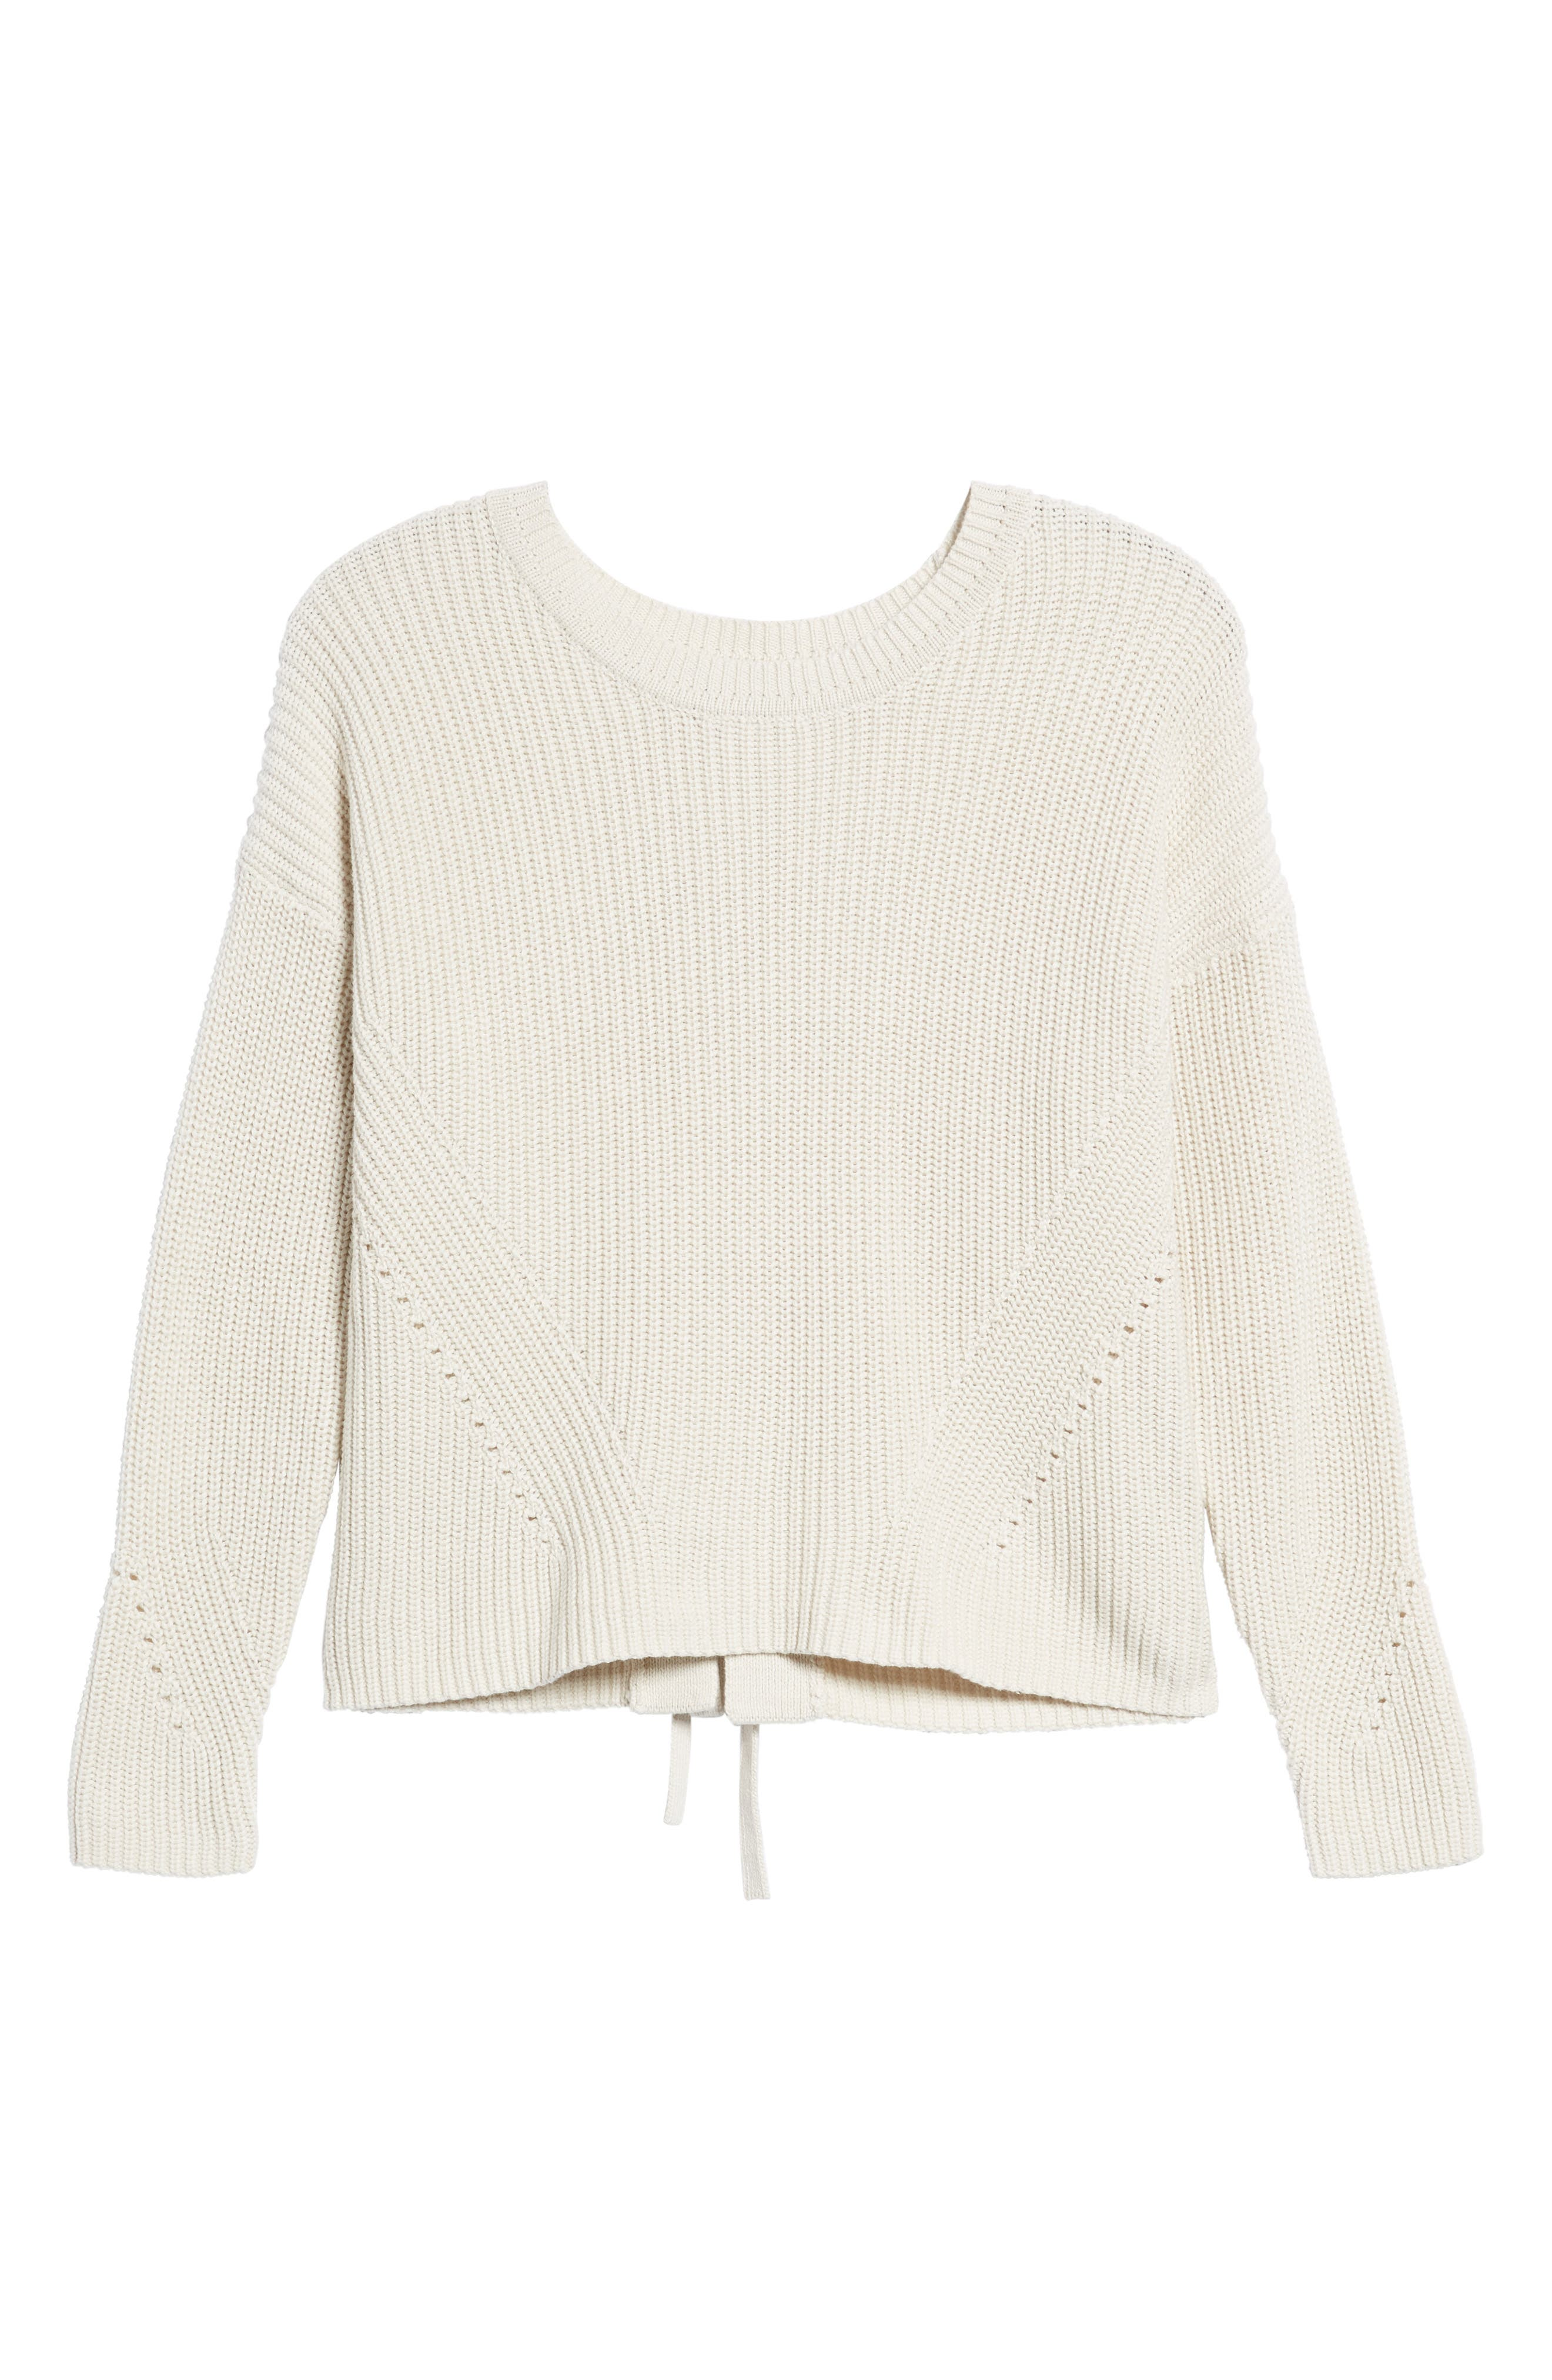 Lace-Up Back Sweater,                             Alternate thumbnail 6, color,                             250